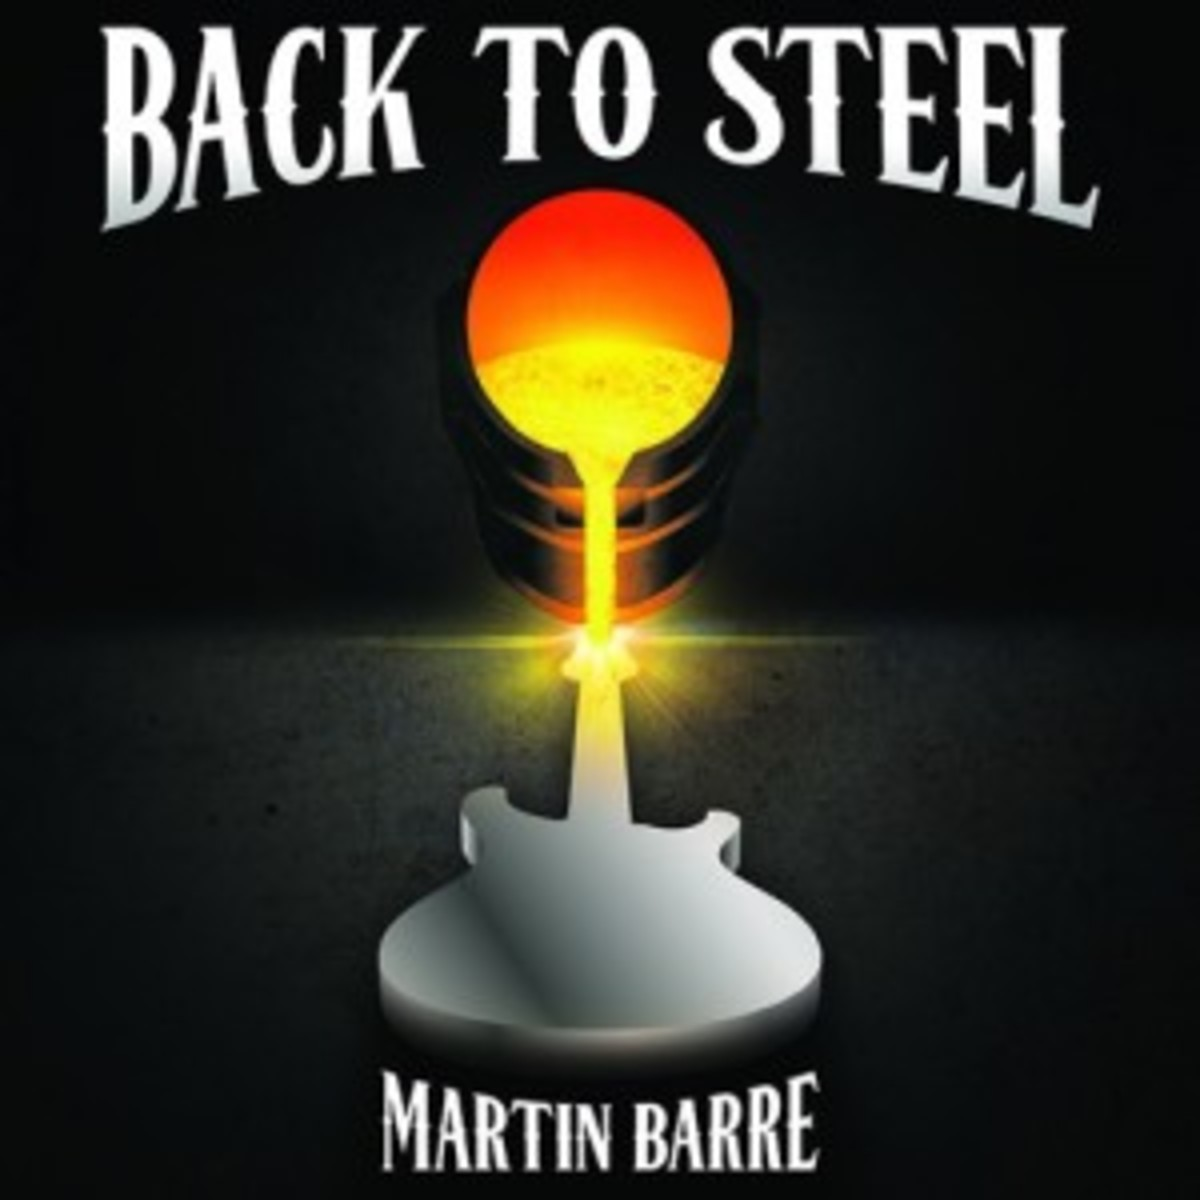 back to steel cover by martin barre band